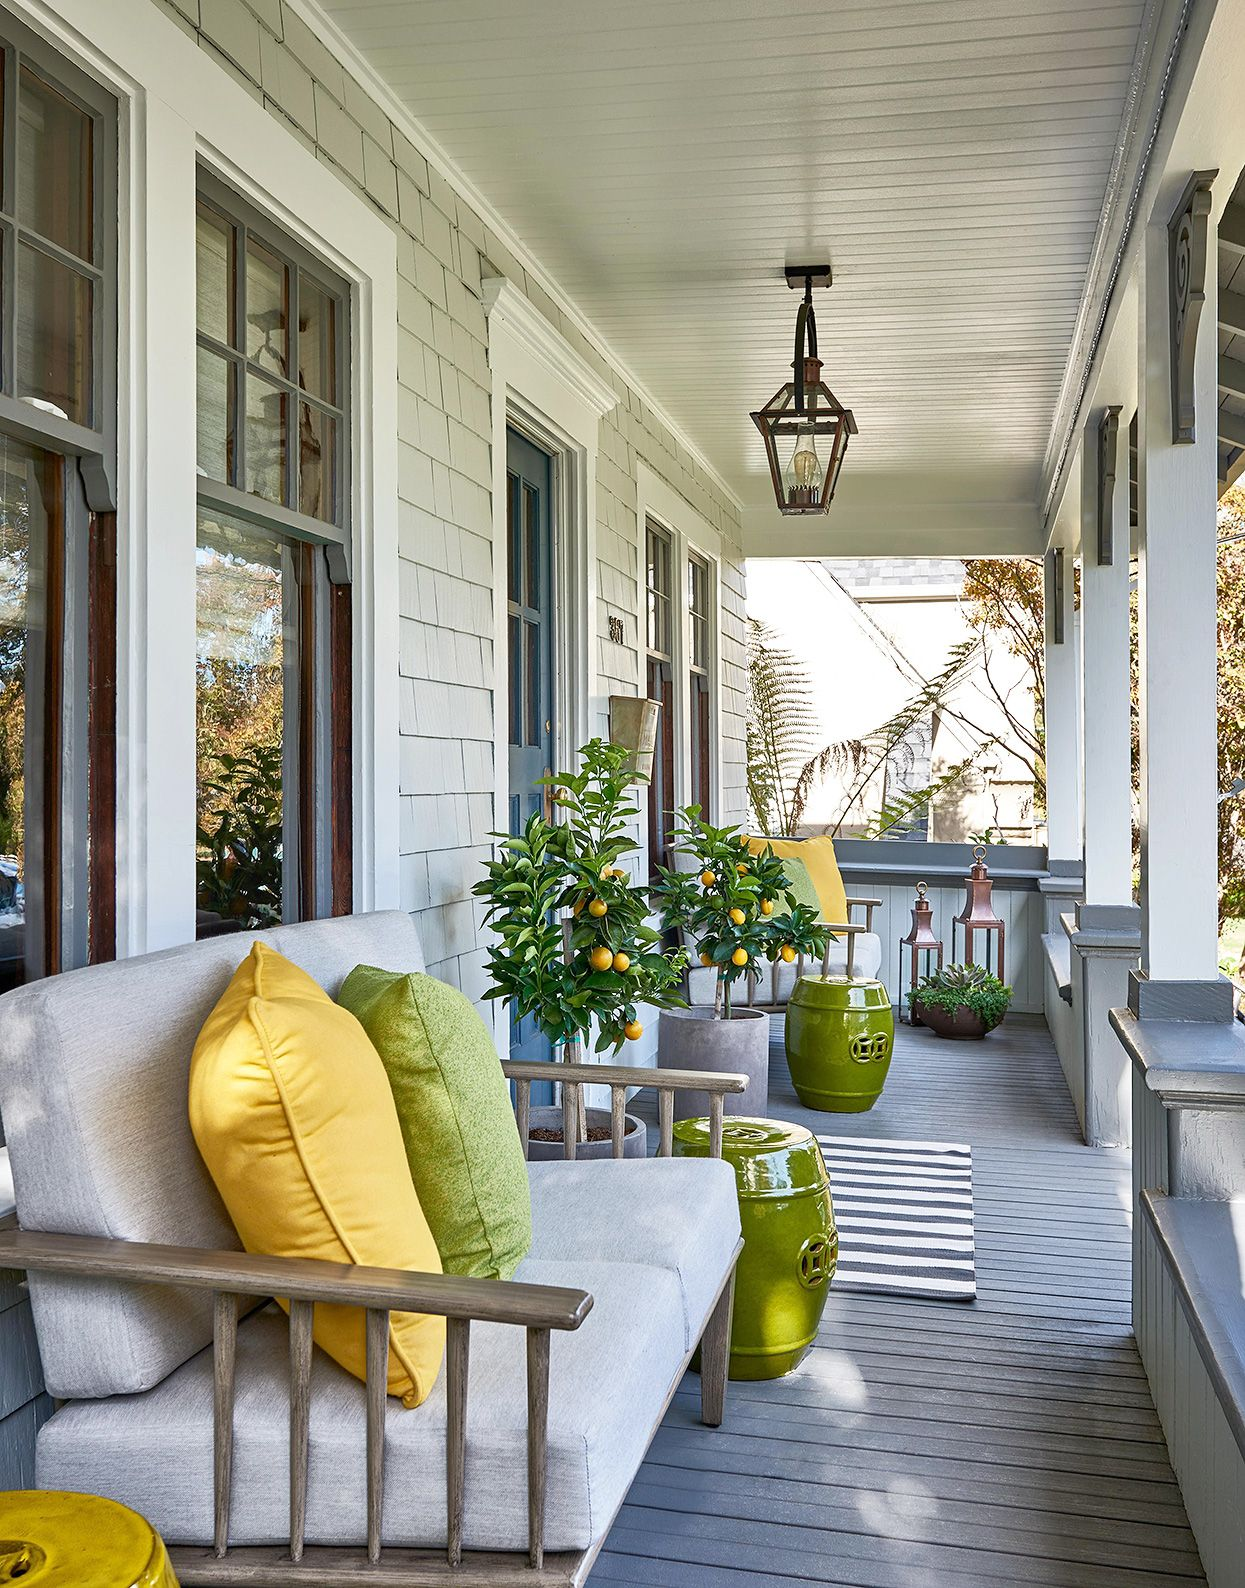 Porch ideas don't have to be complicated. Sometimes a simple swap of the color palette can make your design feel fresh again. #fourseasonsroom #frontporch #porchideas #patiodecor #homedecorideas #bhg